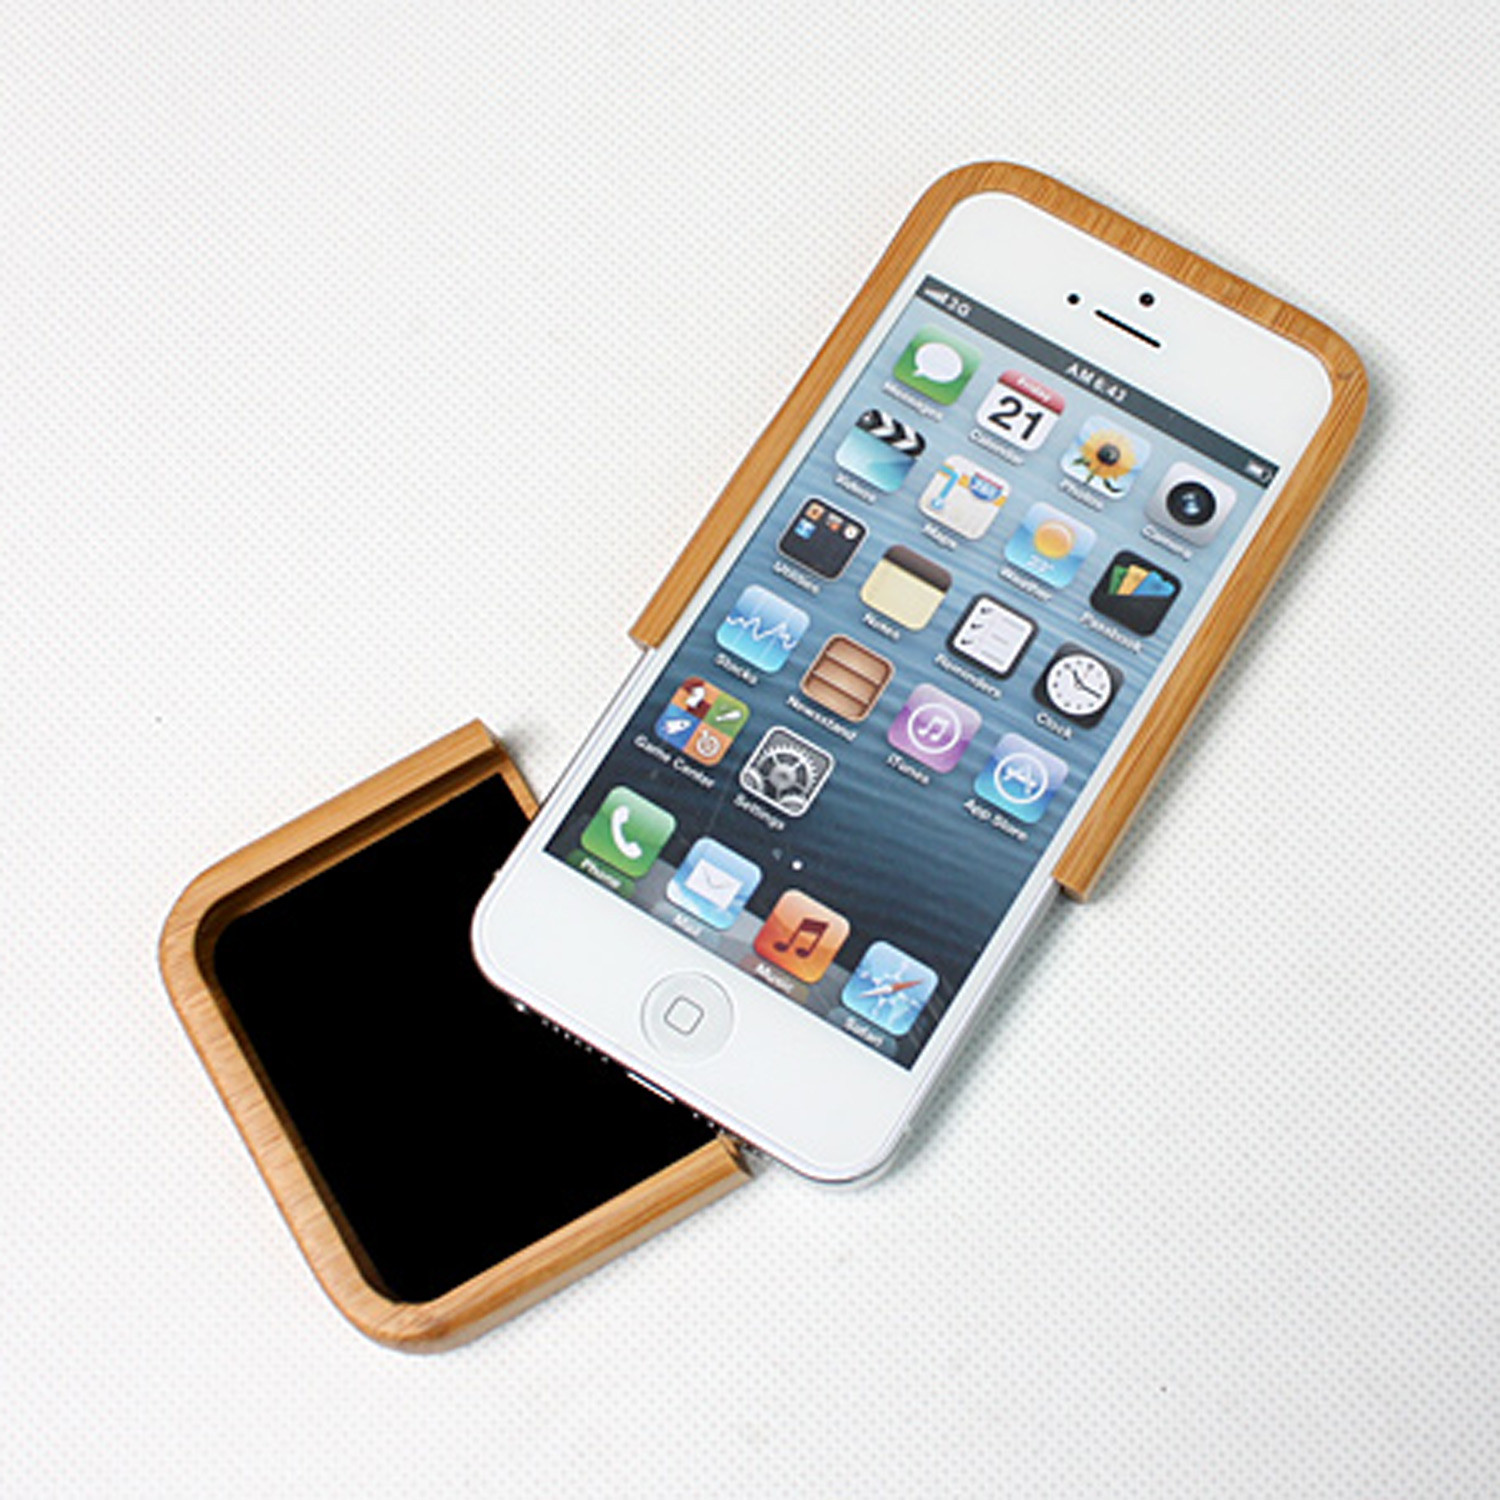 iphone 5 on sale iphone 5 5s bamboo geekcook touch of modern 2170